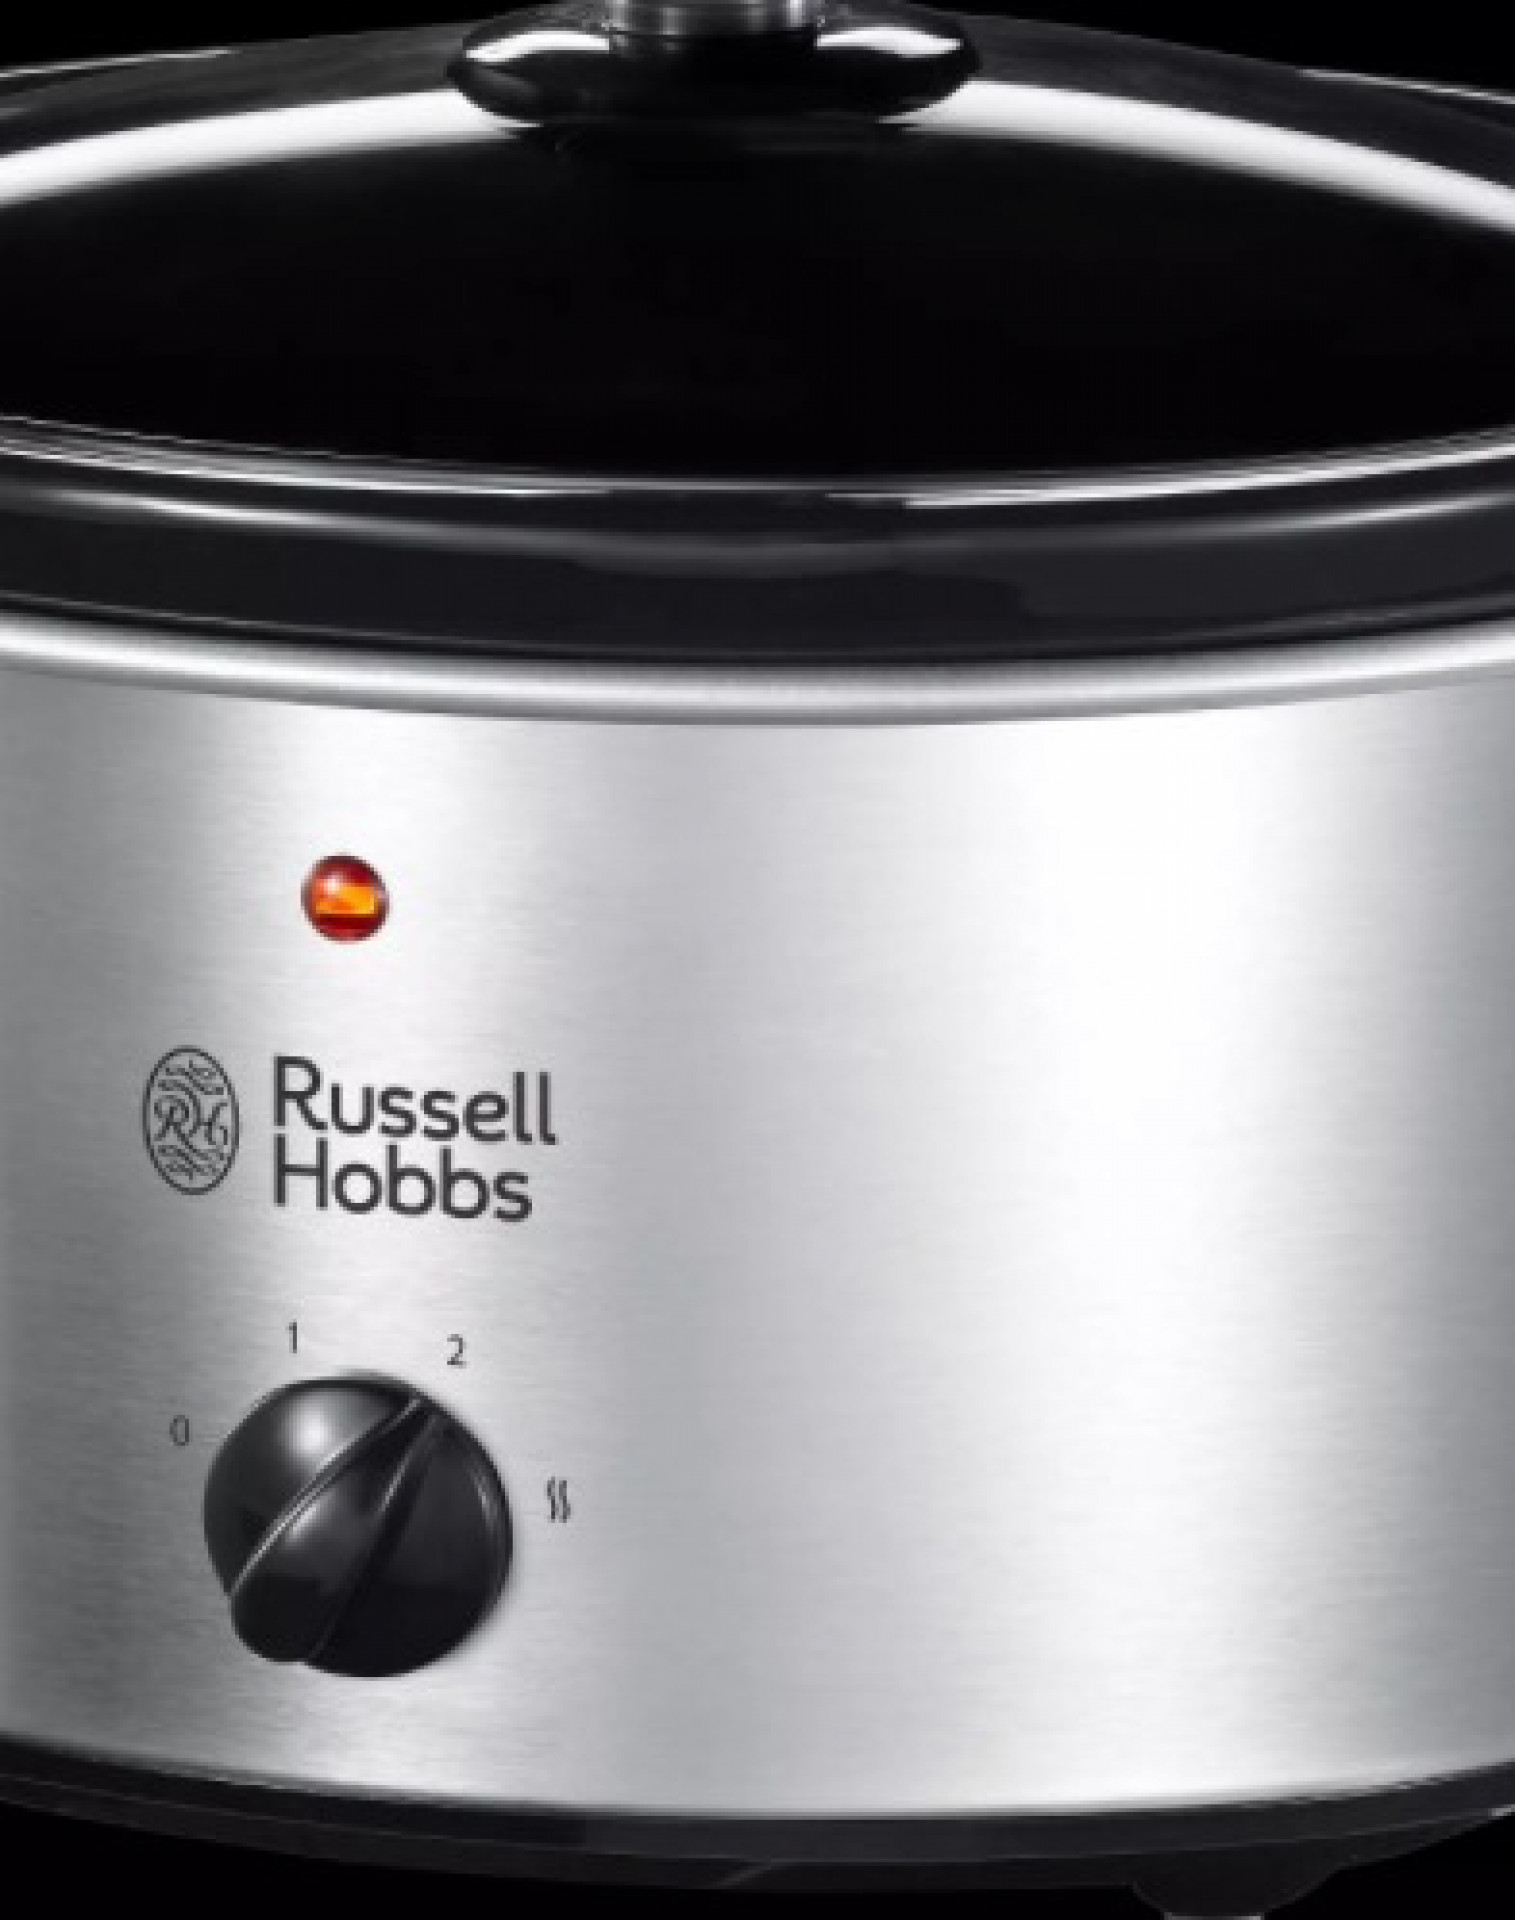 Russell Hobbs 3.5L Slow Cooker, Stainless Steel